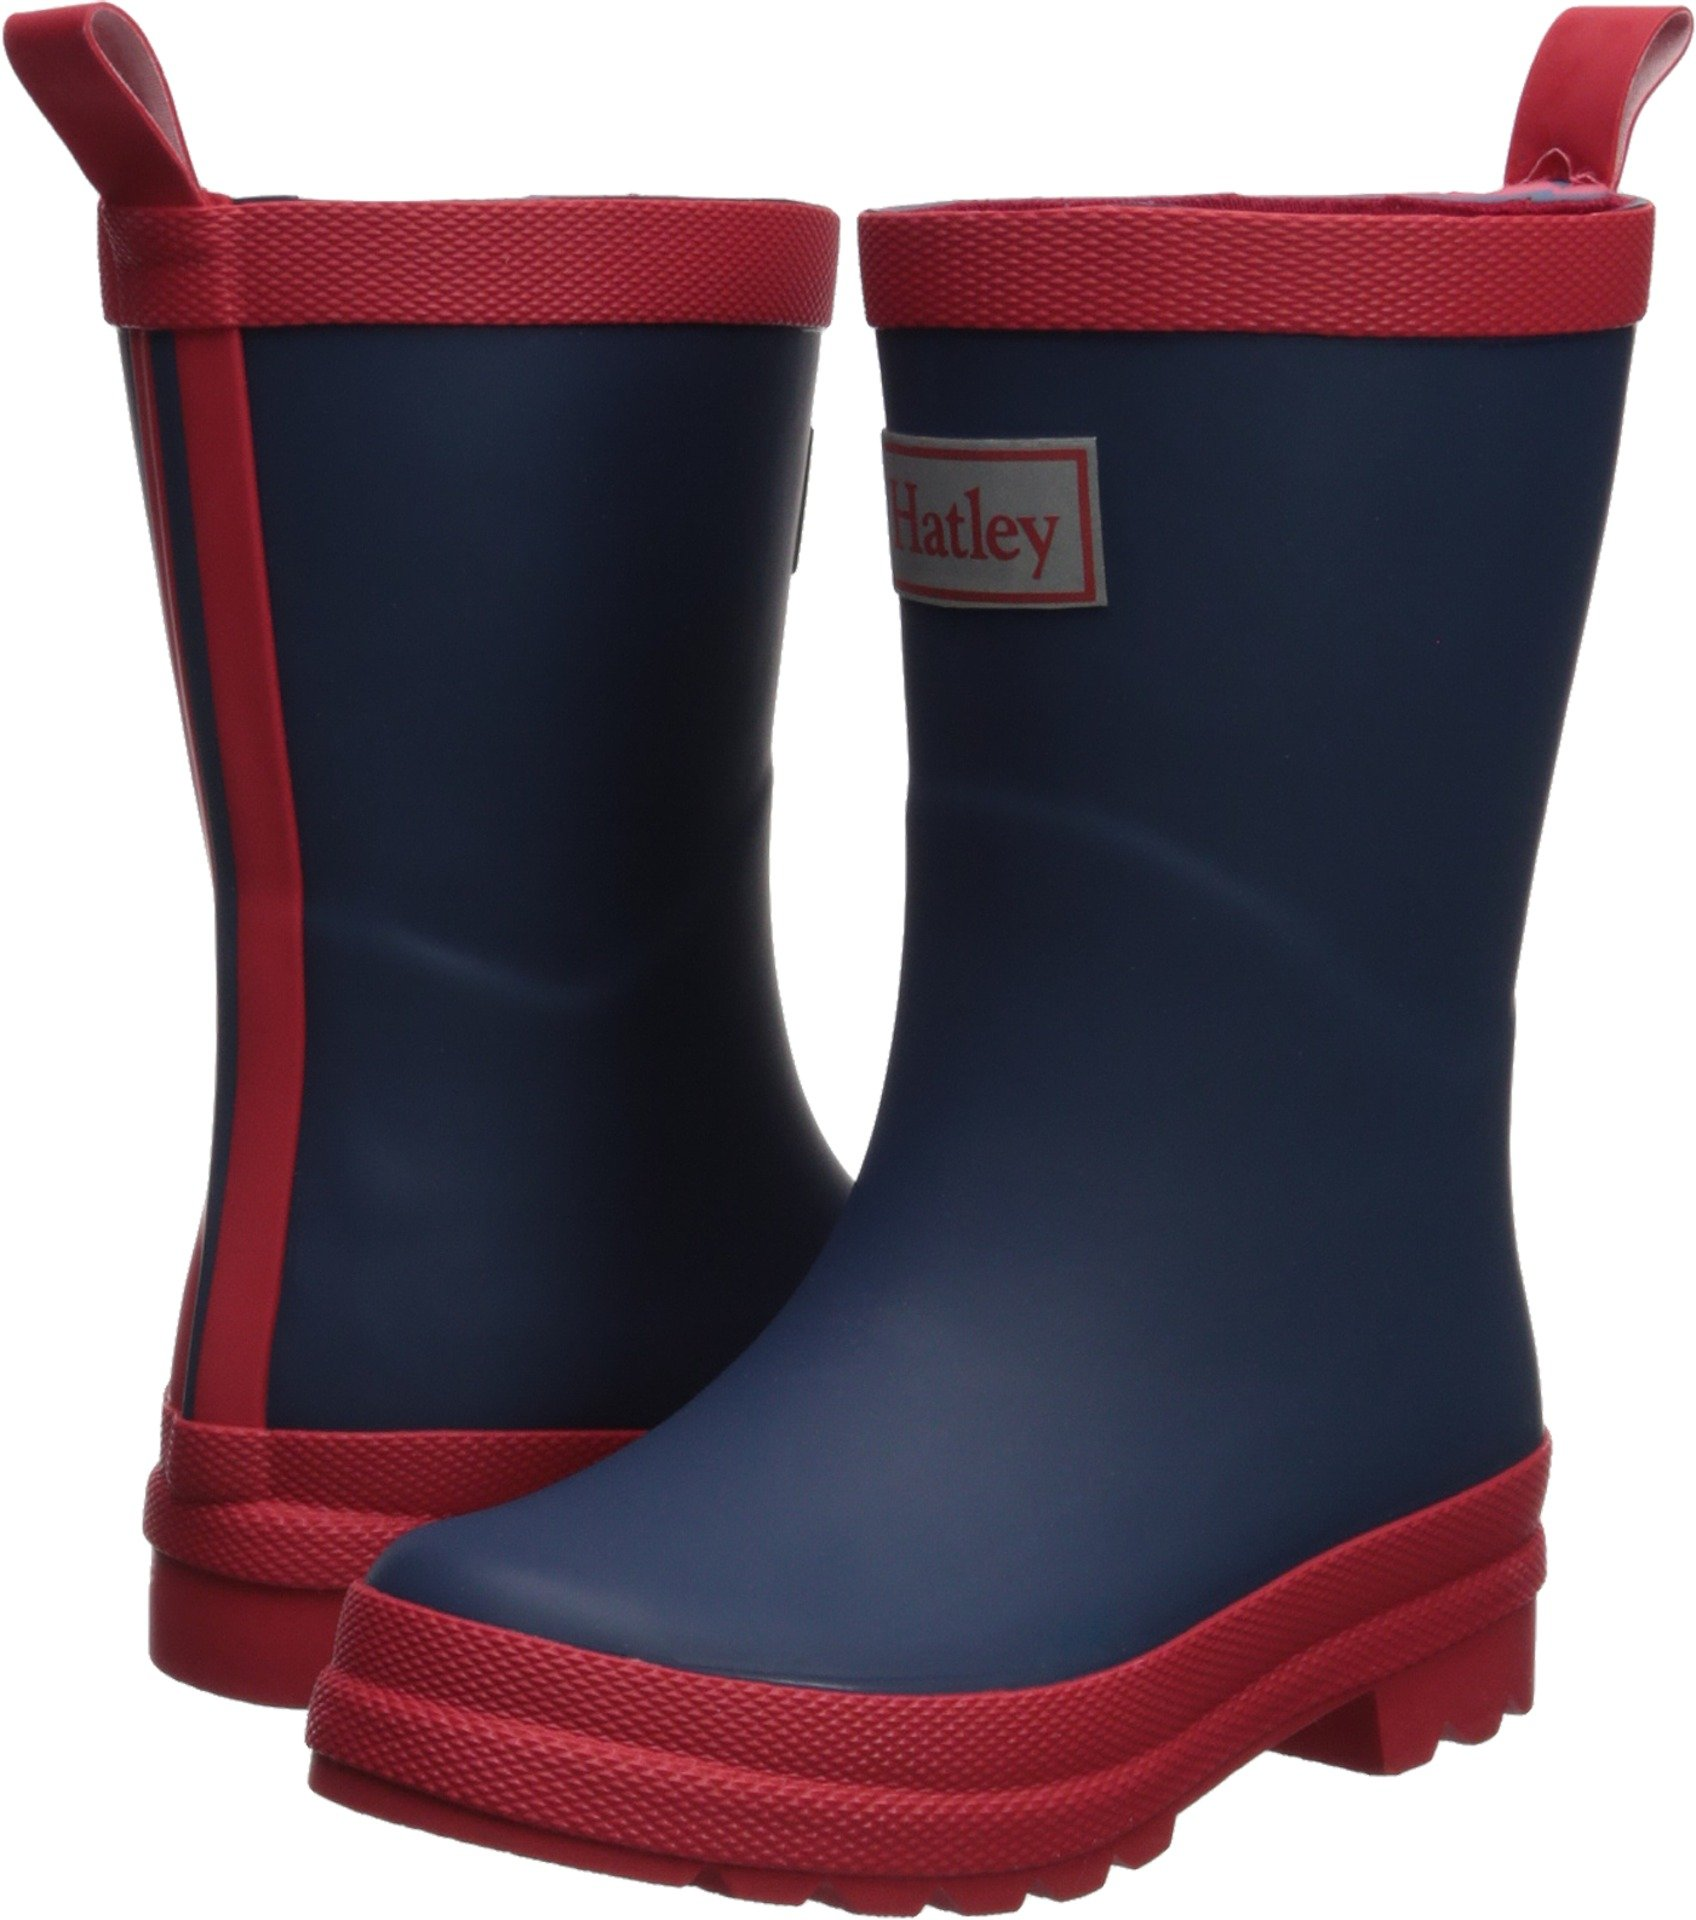 Hatley Kids' Little Classic Rain Boots, Navy and Red, 13 US Child